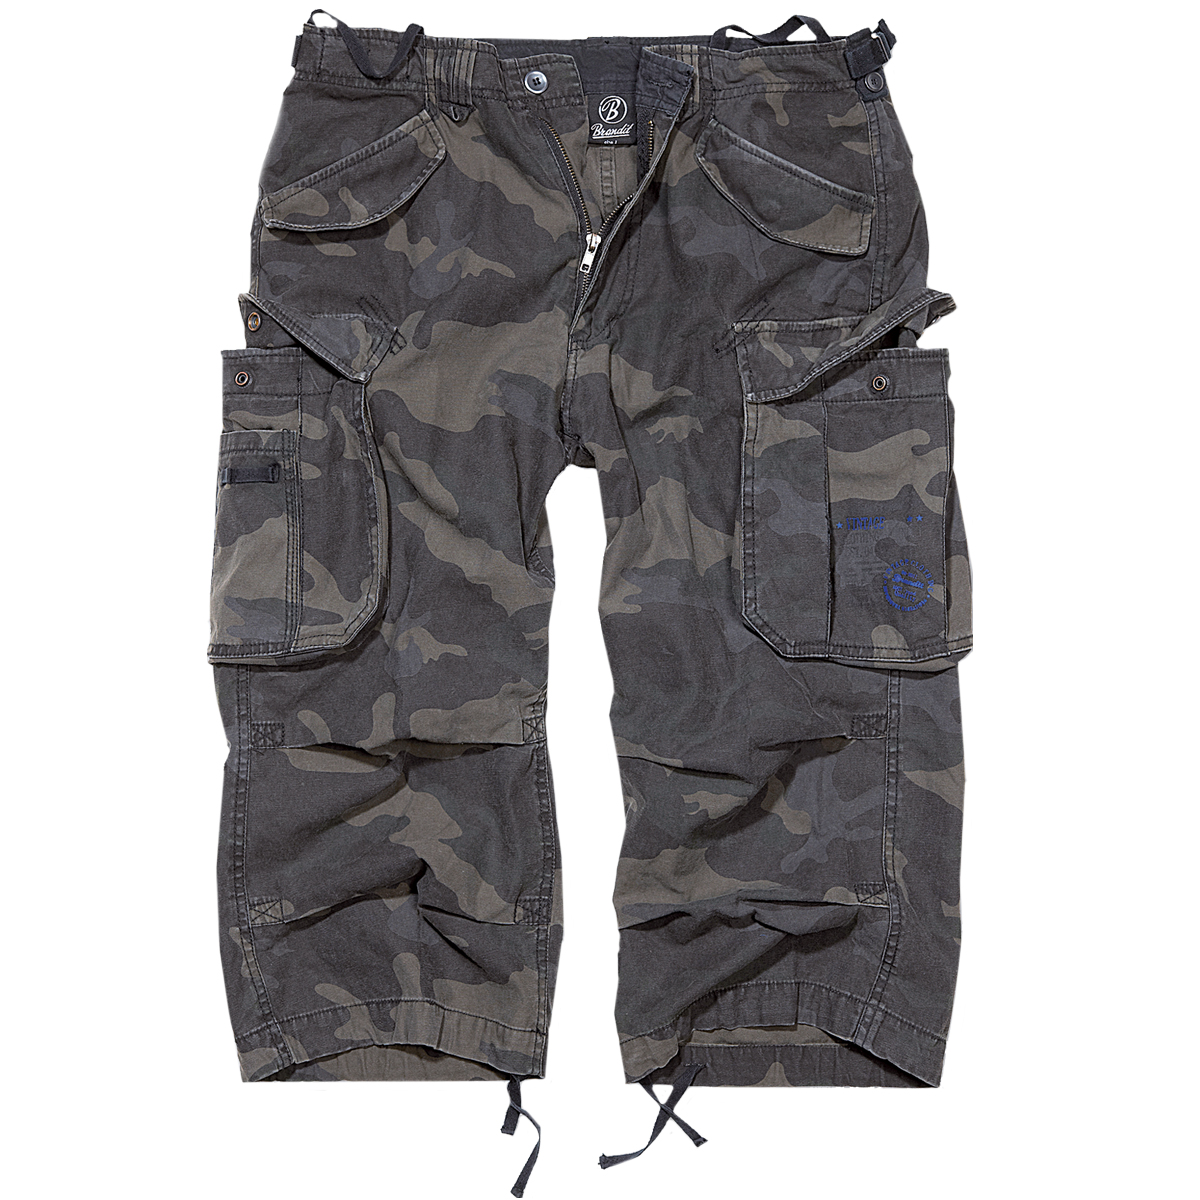 f180241ffd40 Sentinel Brandit Industry Vintage 3 4 Shorts Outdoor Cotton Casual Mens  Bottoms Dark Camo